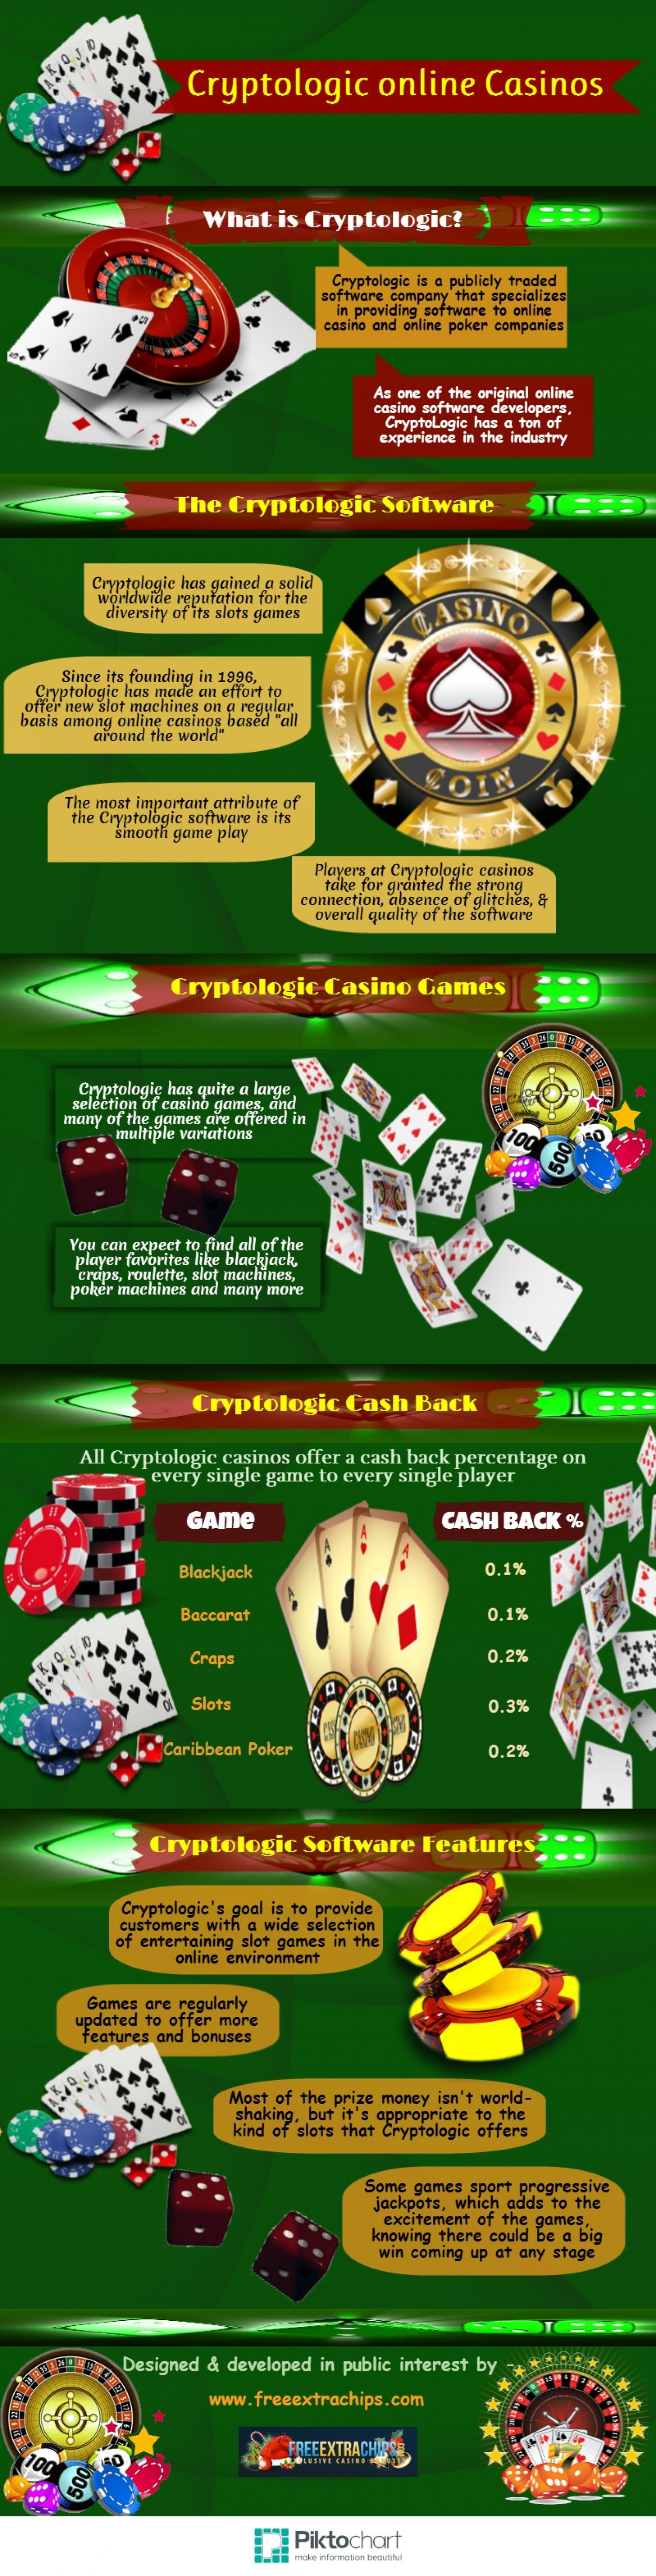 Cryptologic online Casinos Infographic